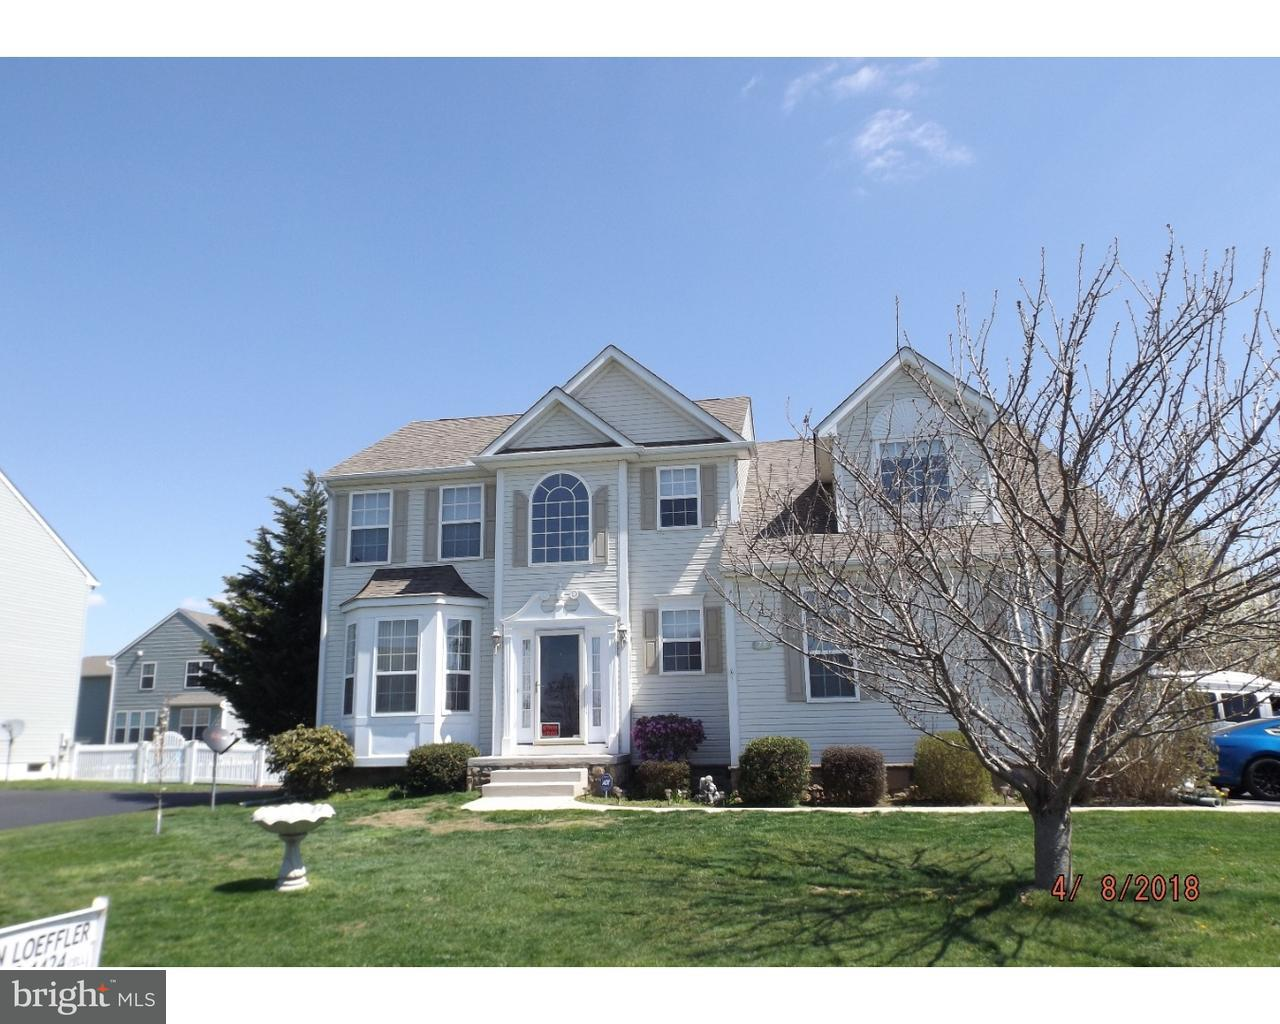 Single Family Home for Sale at 75 BELFRY Drive Felton, Delaware 19943 United States